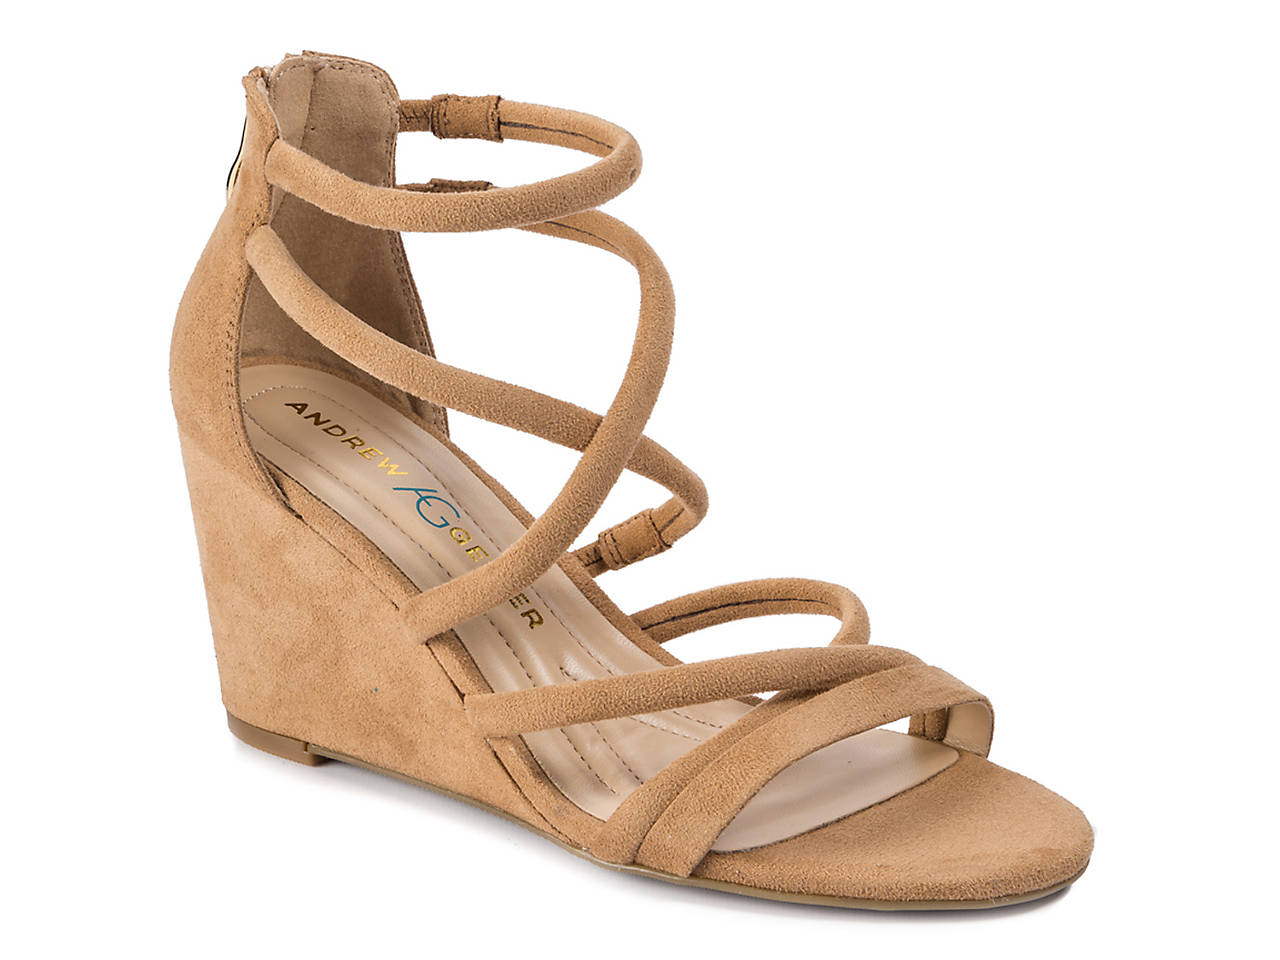 20c372cdefc Bellona Wedge Sandal